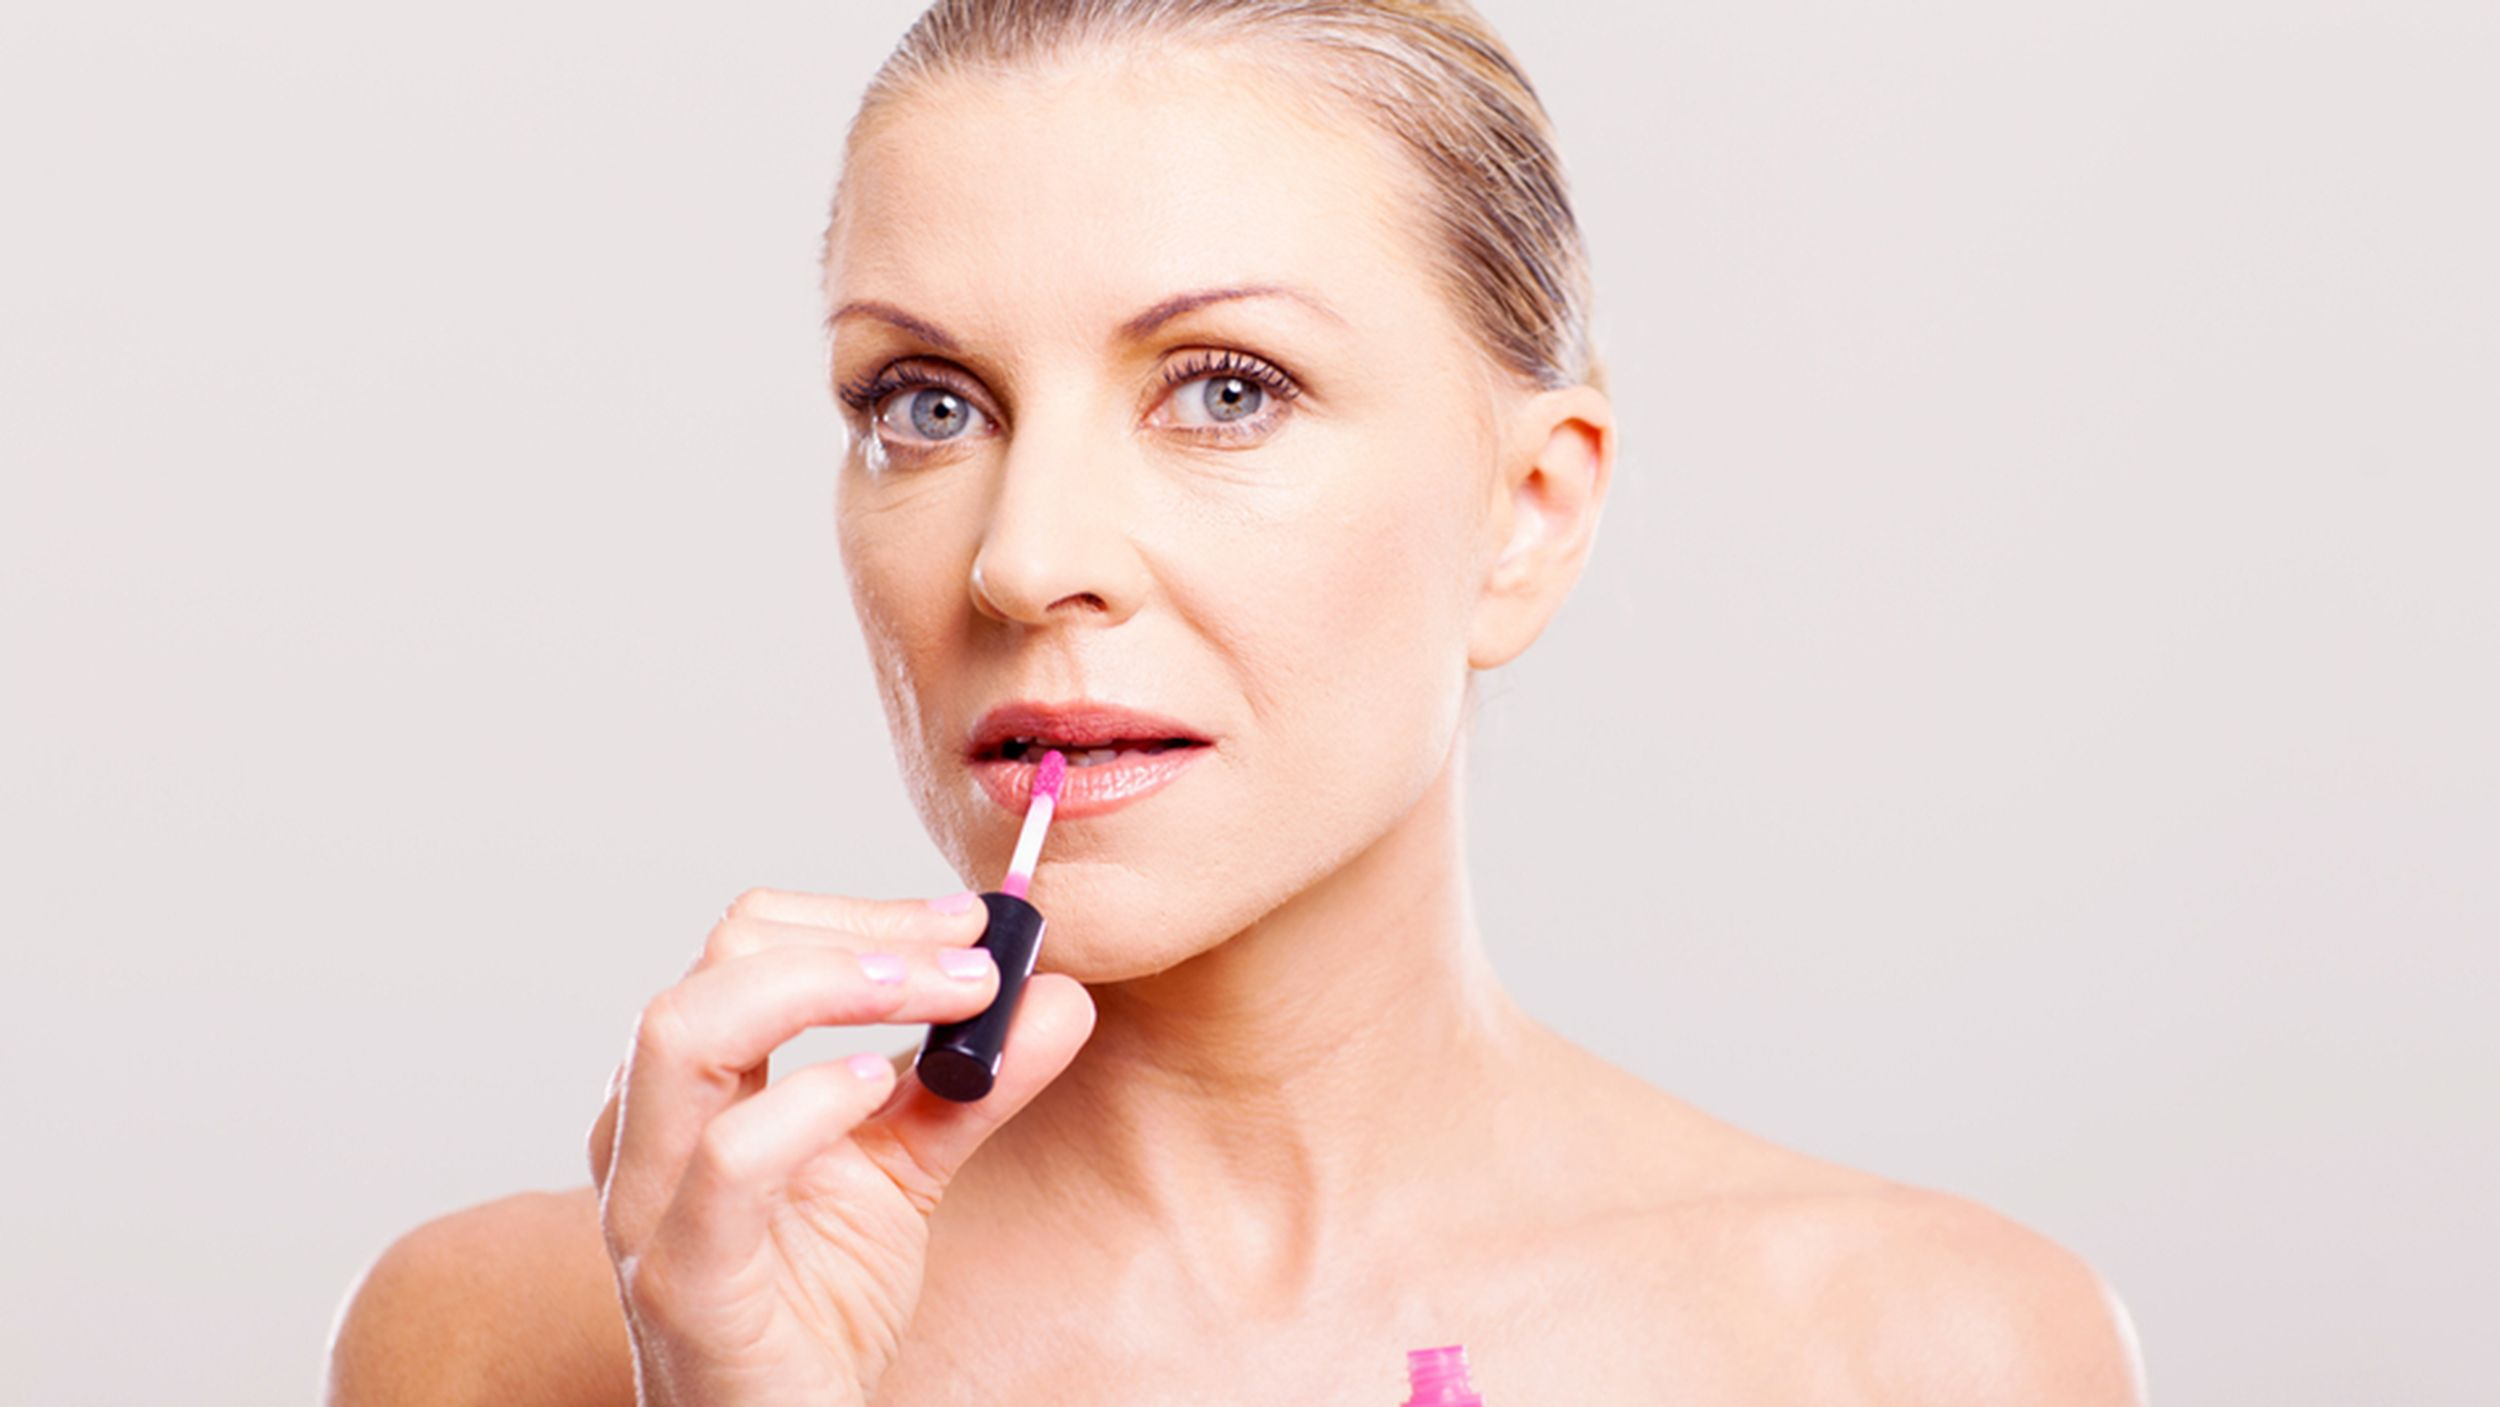 The 5 biggest makeup mistakes women over 50 make — and how